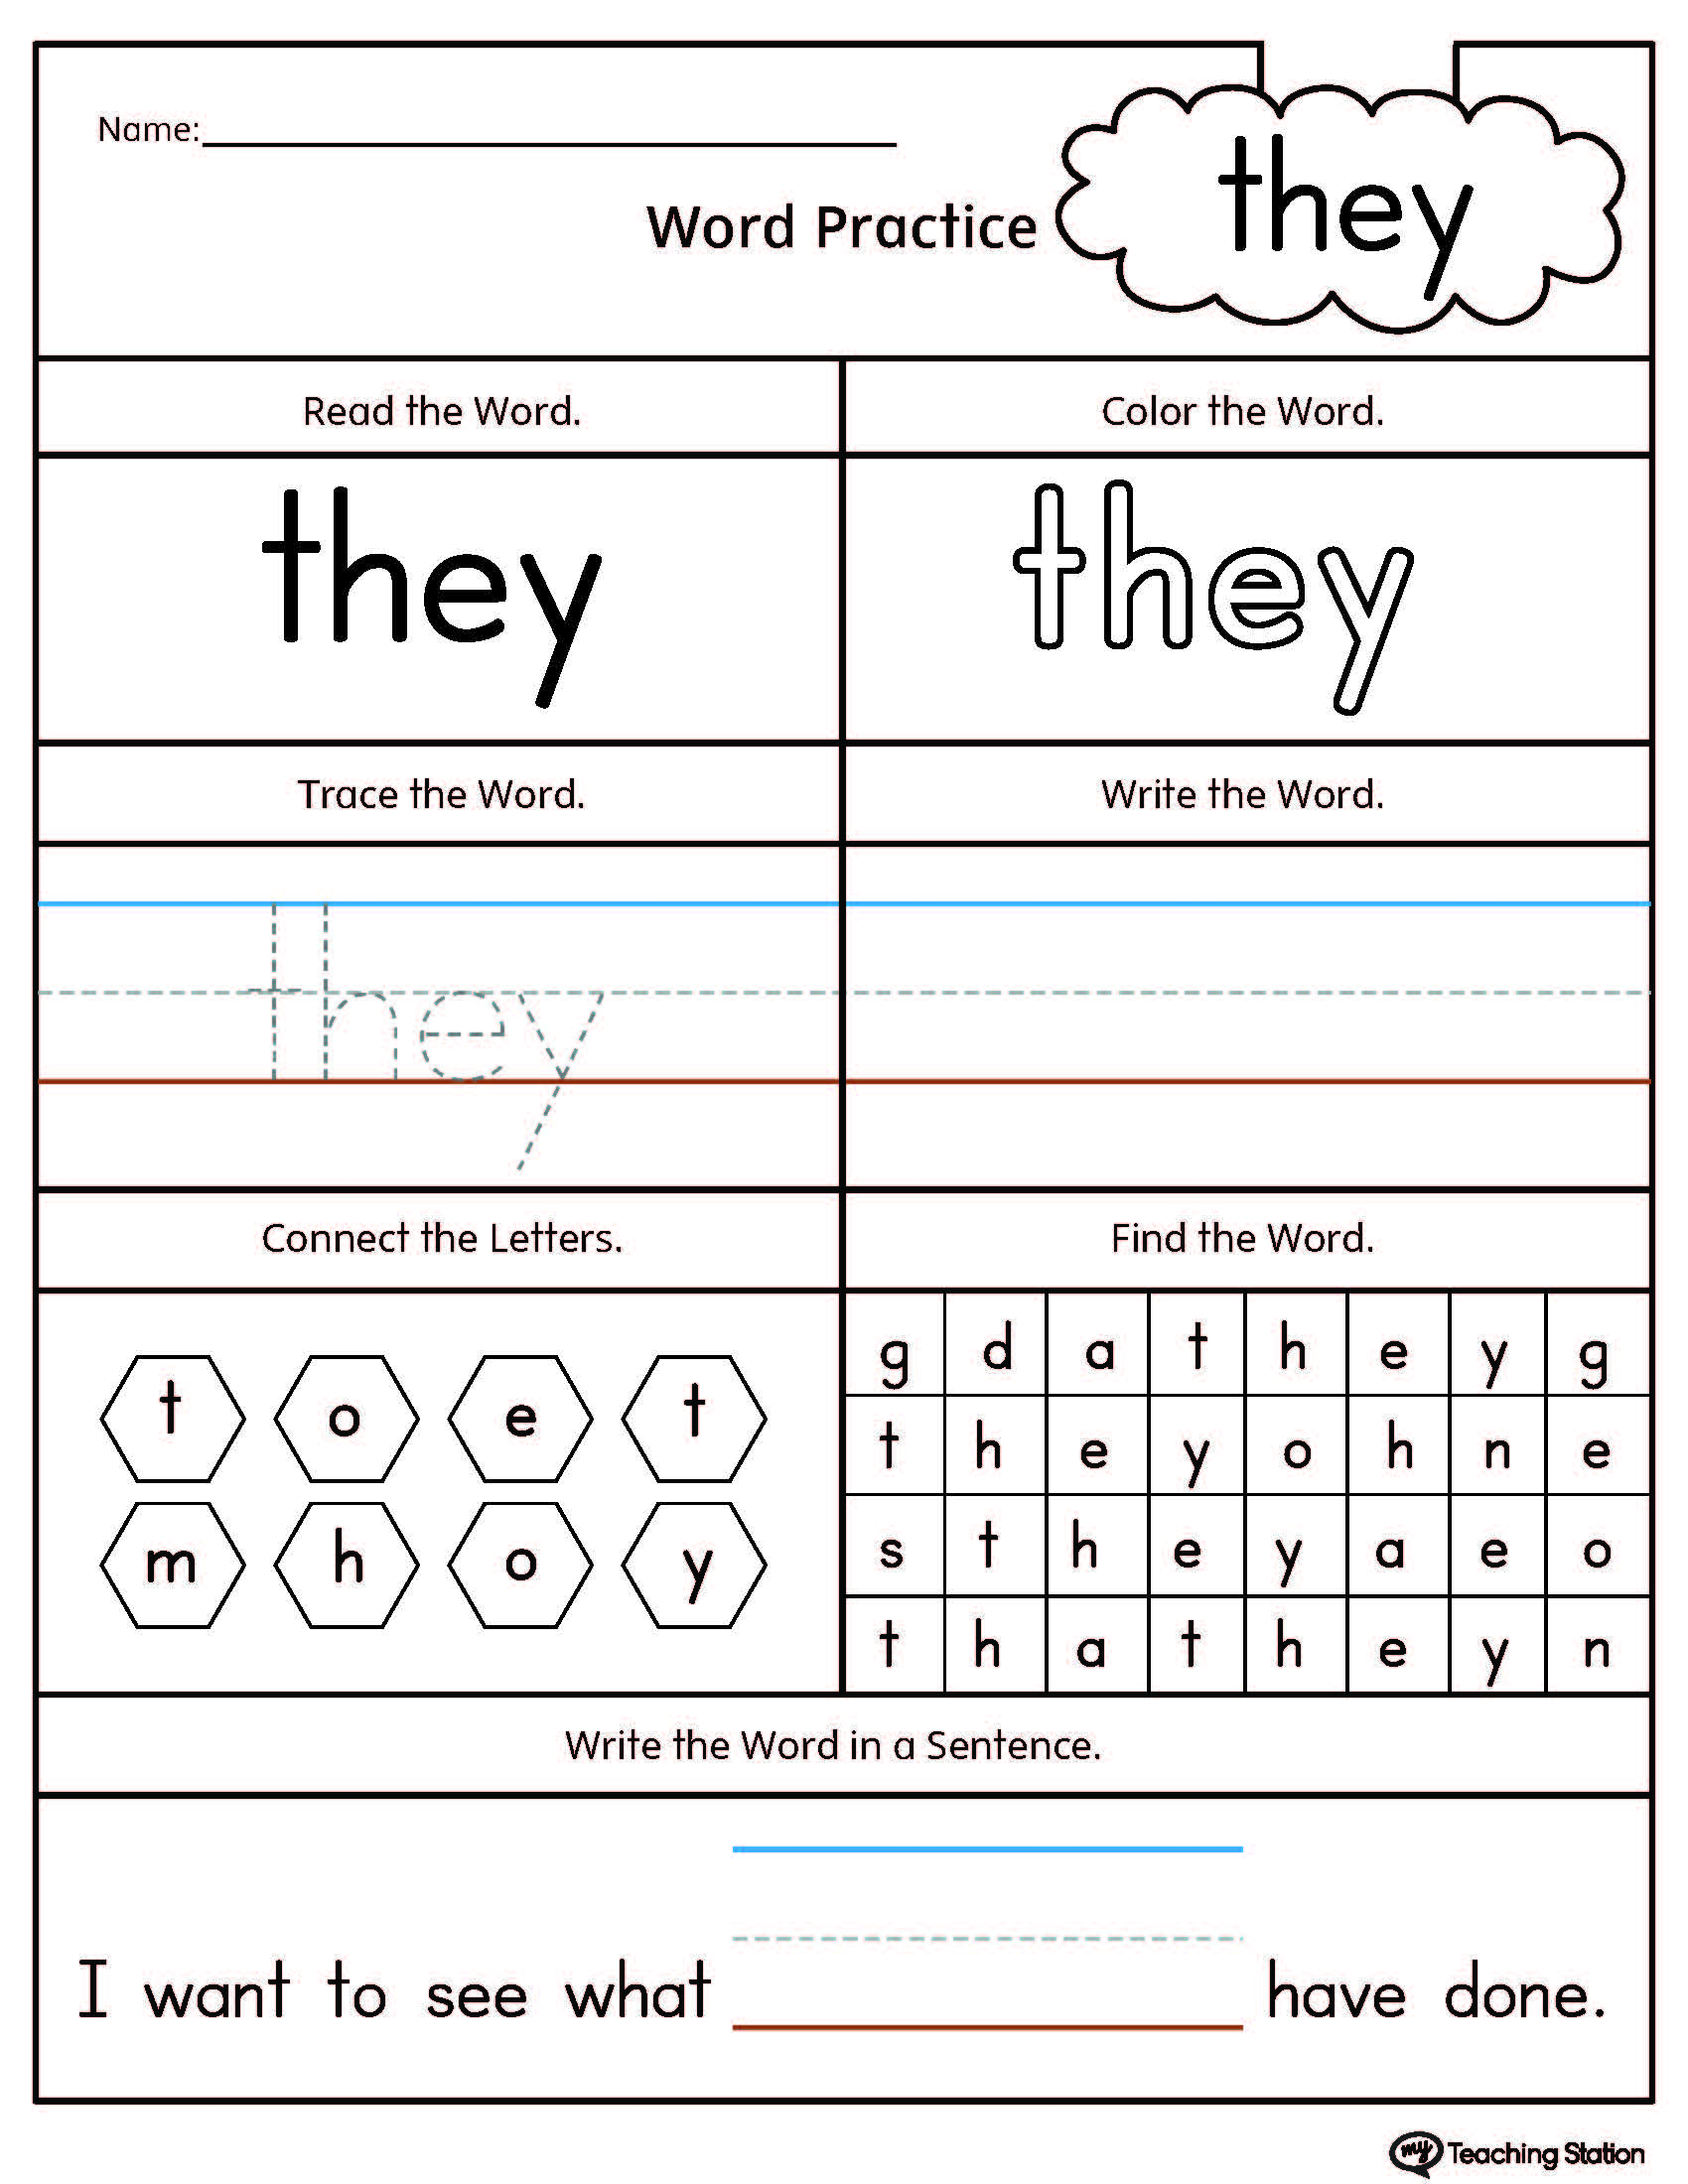 picture regarding Printable Sight Words named Large-Frequency Term THEY Printable Worksheet